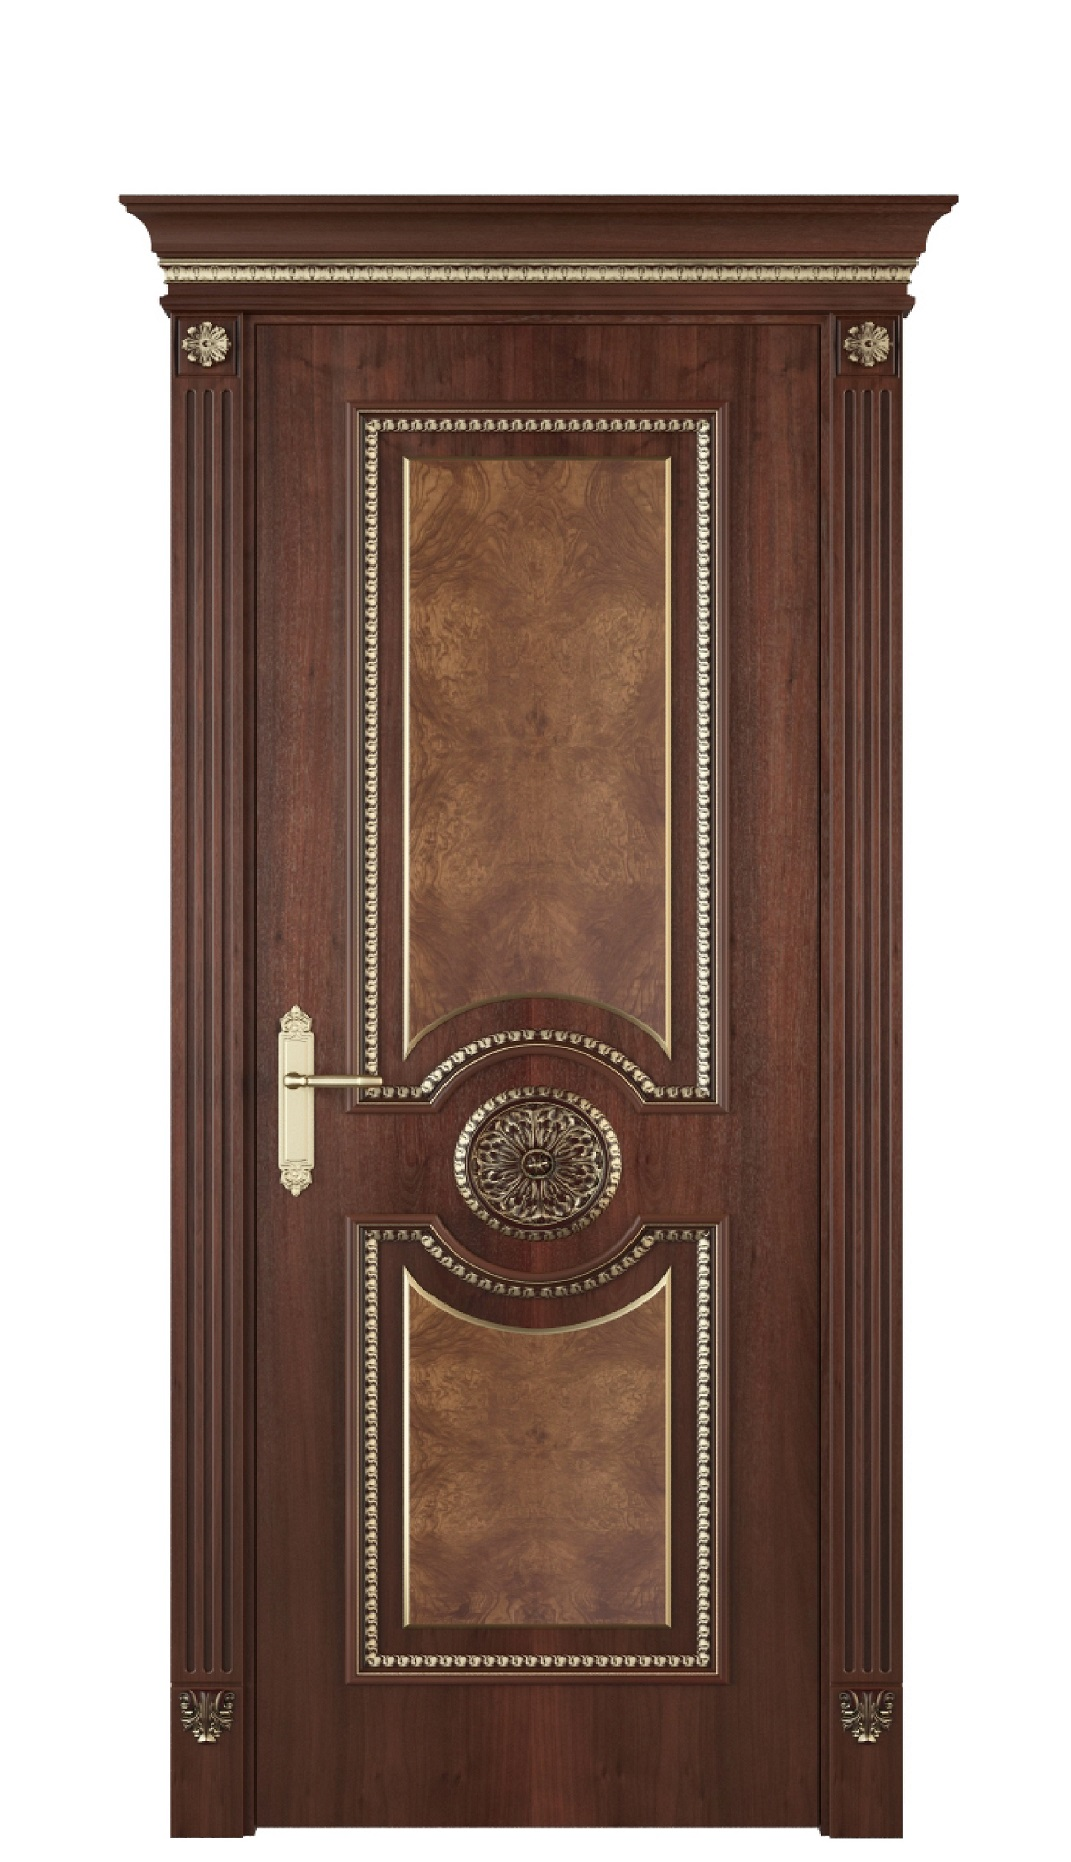 Image Alessandria Interior Door Stained Oak 0